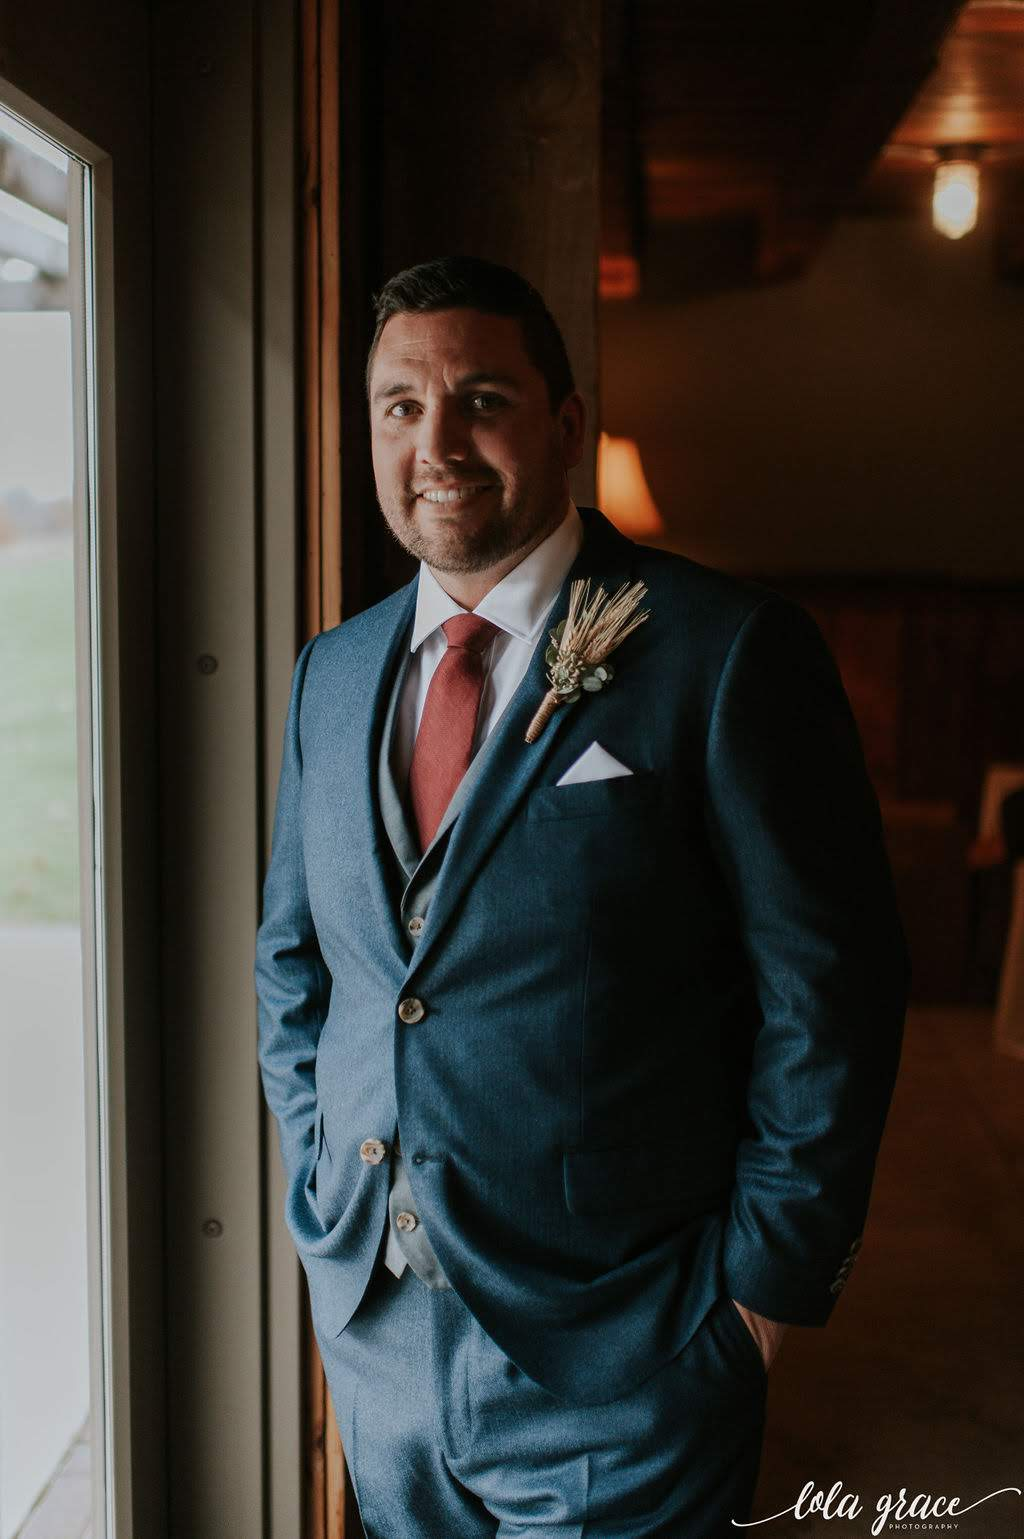 The perfect fall suit and boutonniere combo for this handsome groom.